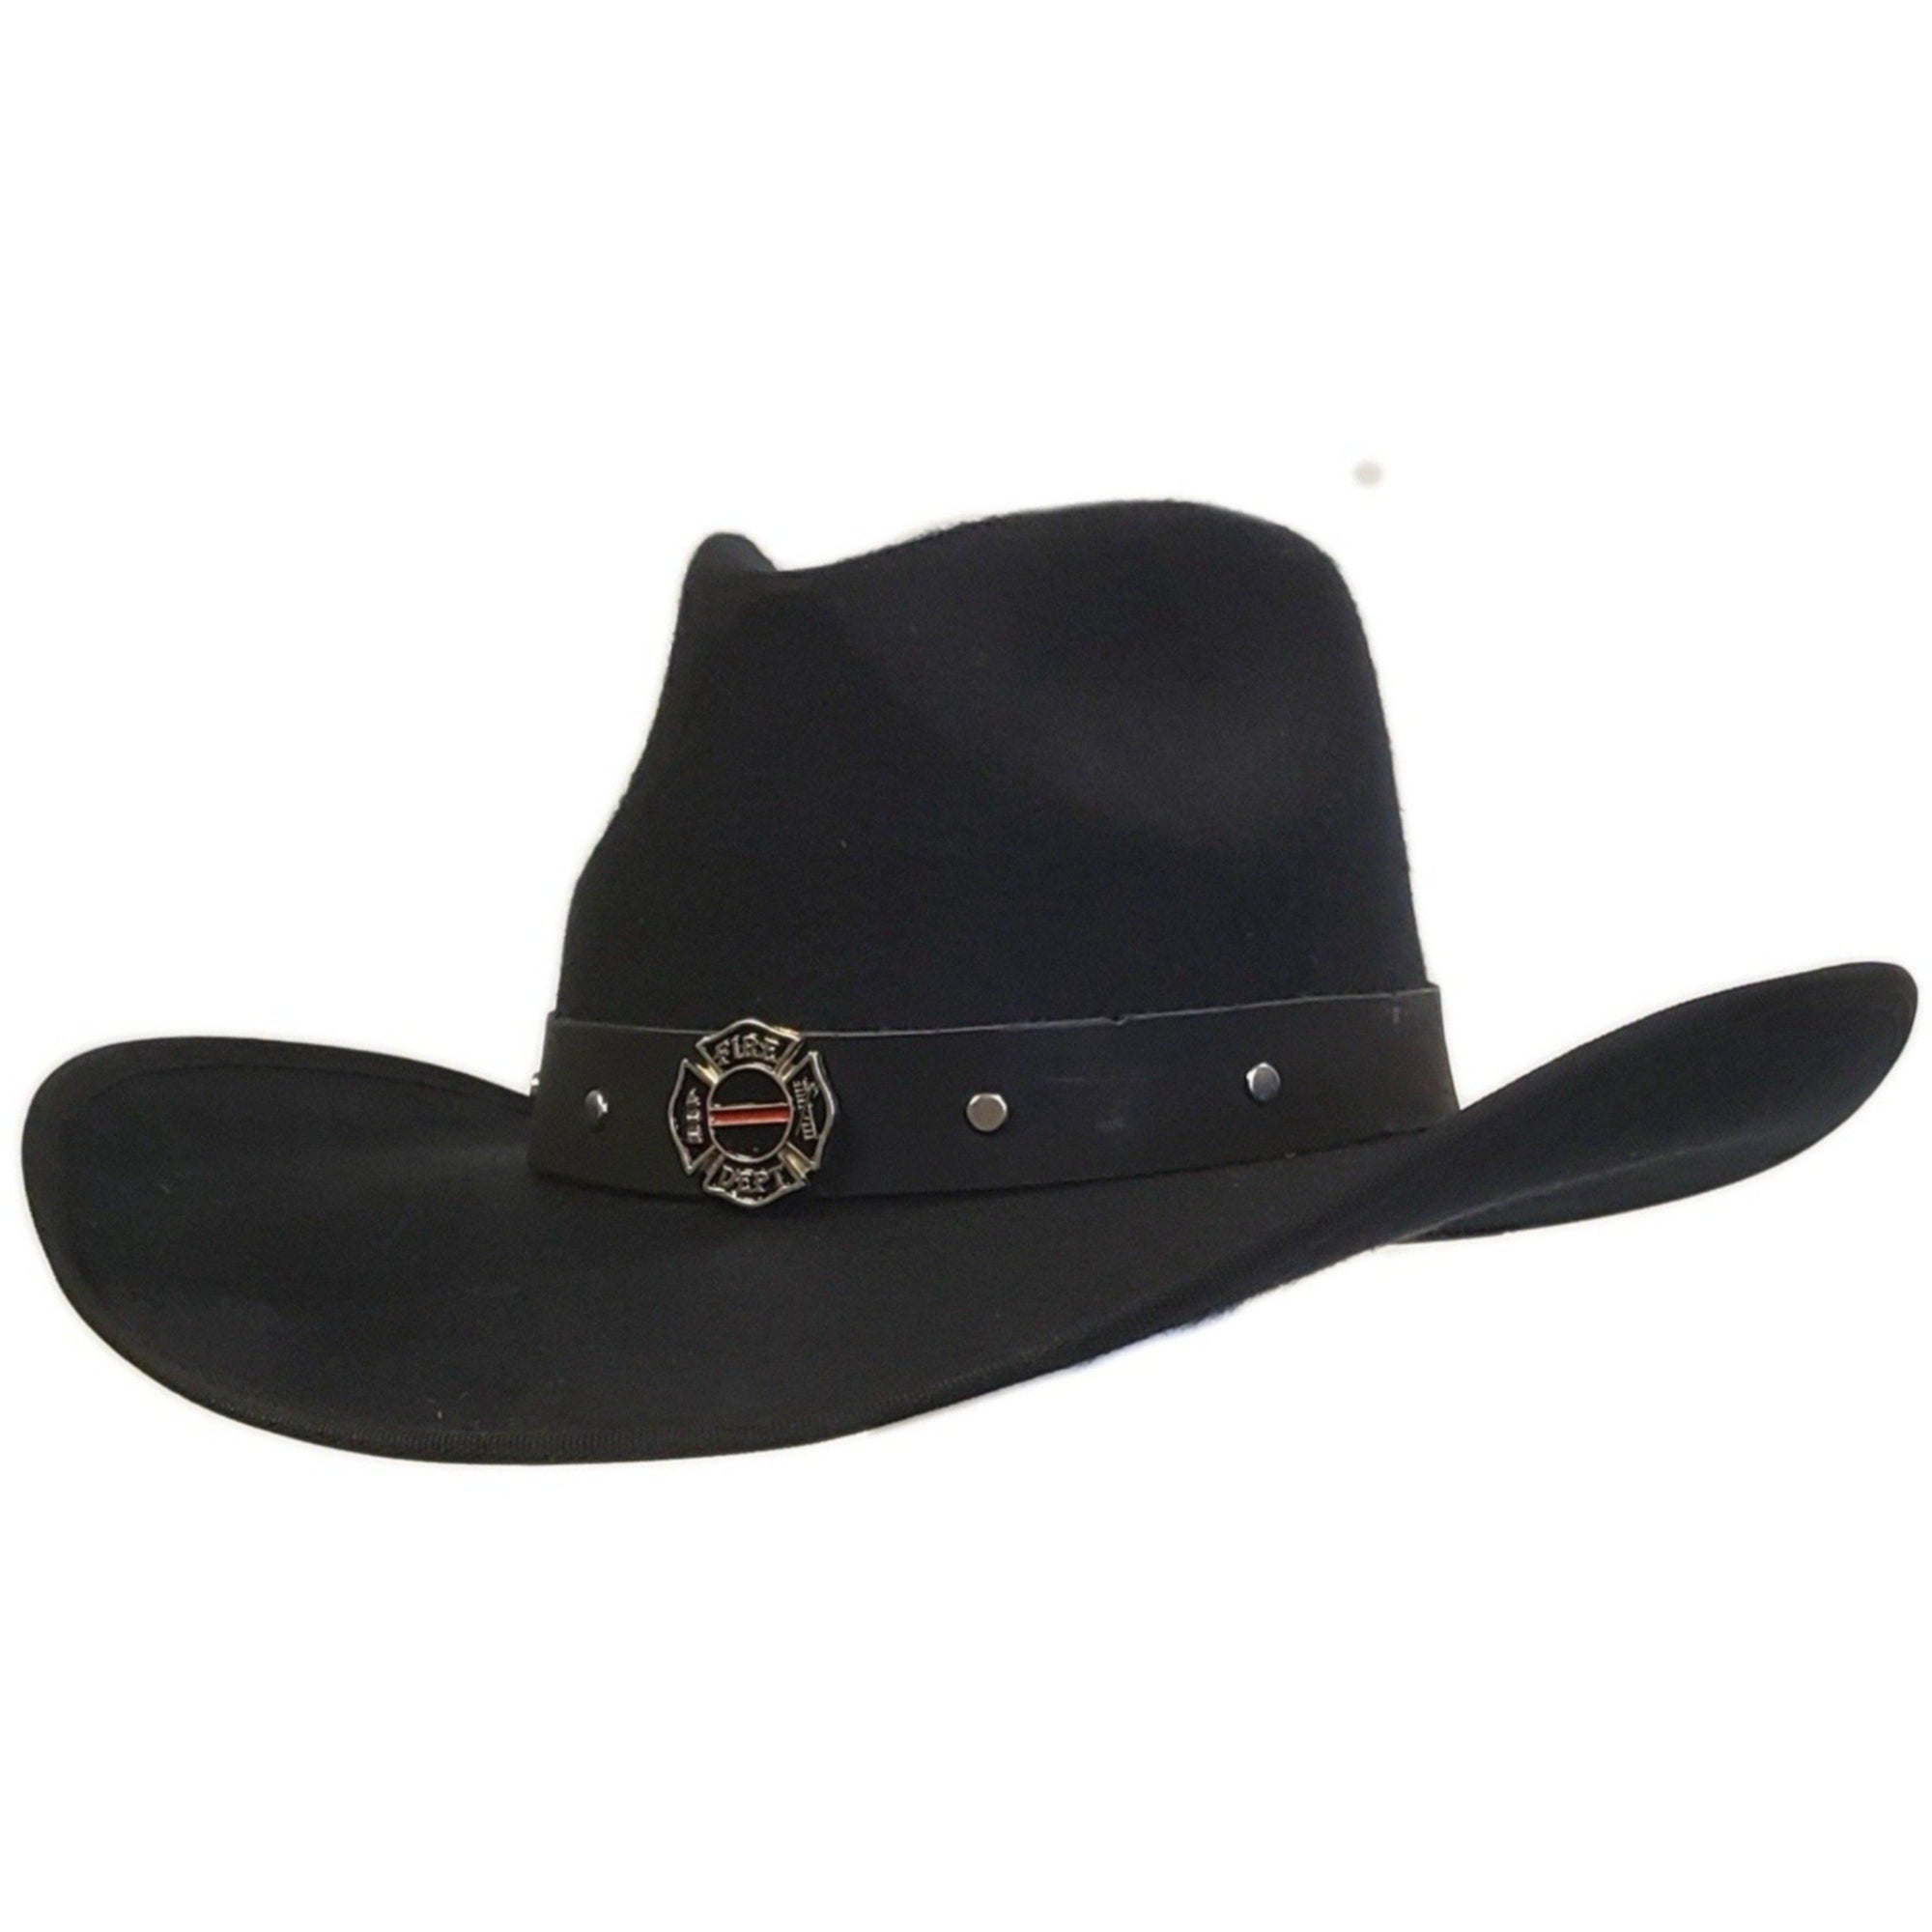 Black cotton felt pinch crown cowboy hat from Gone Country Hats with Firefighter emblem on the hatband